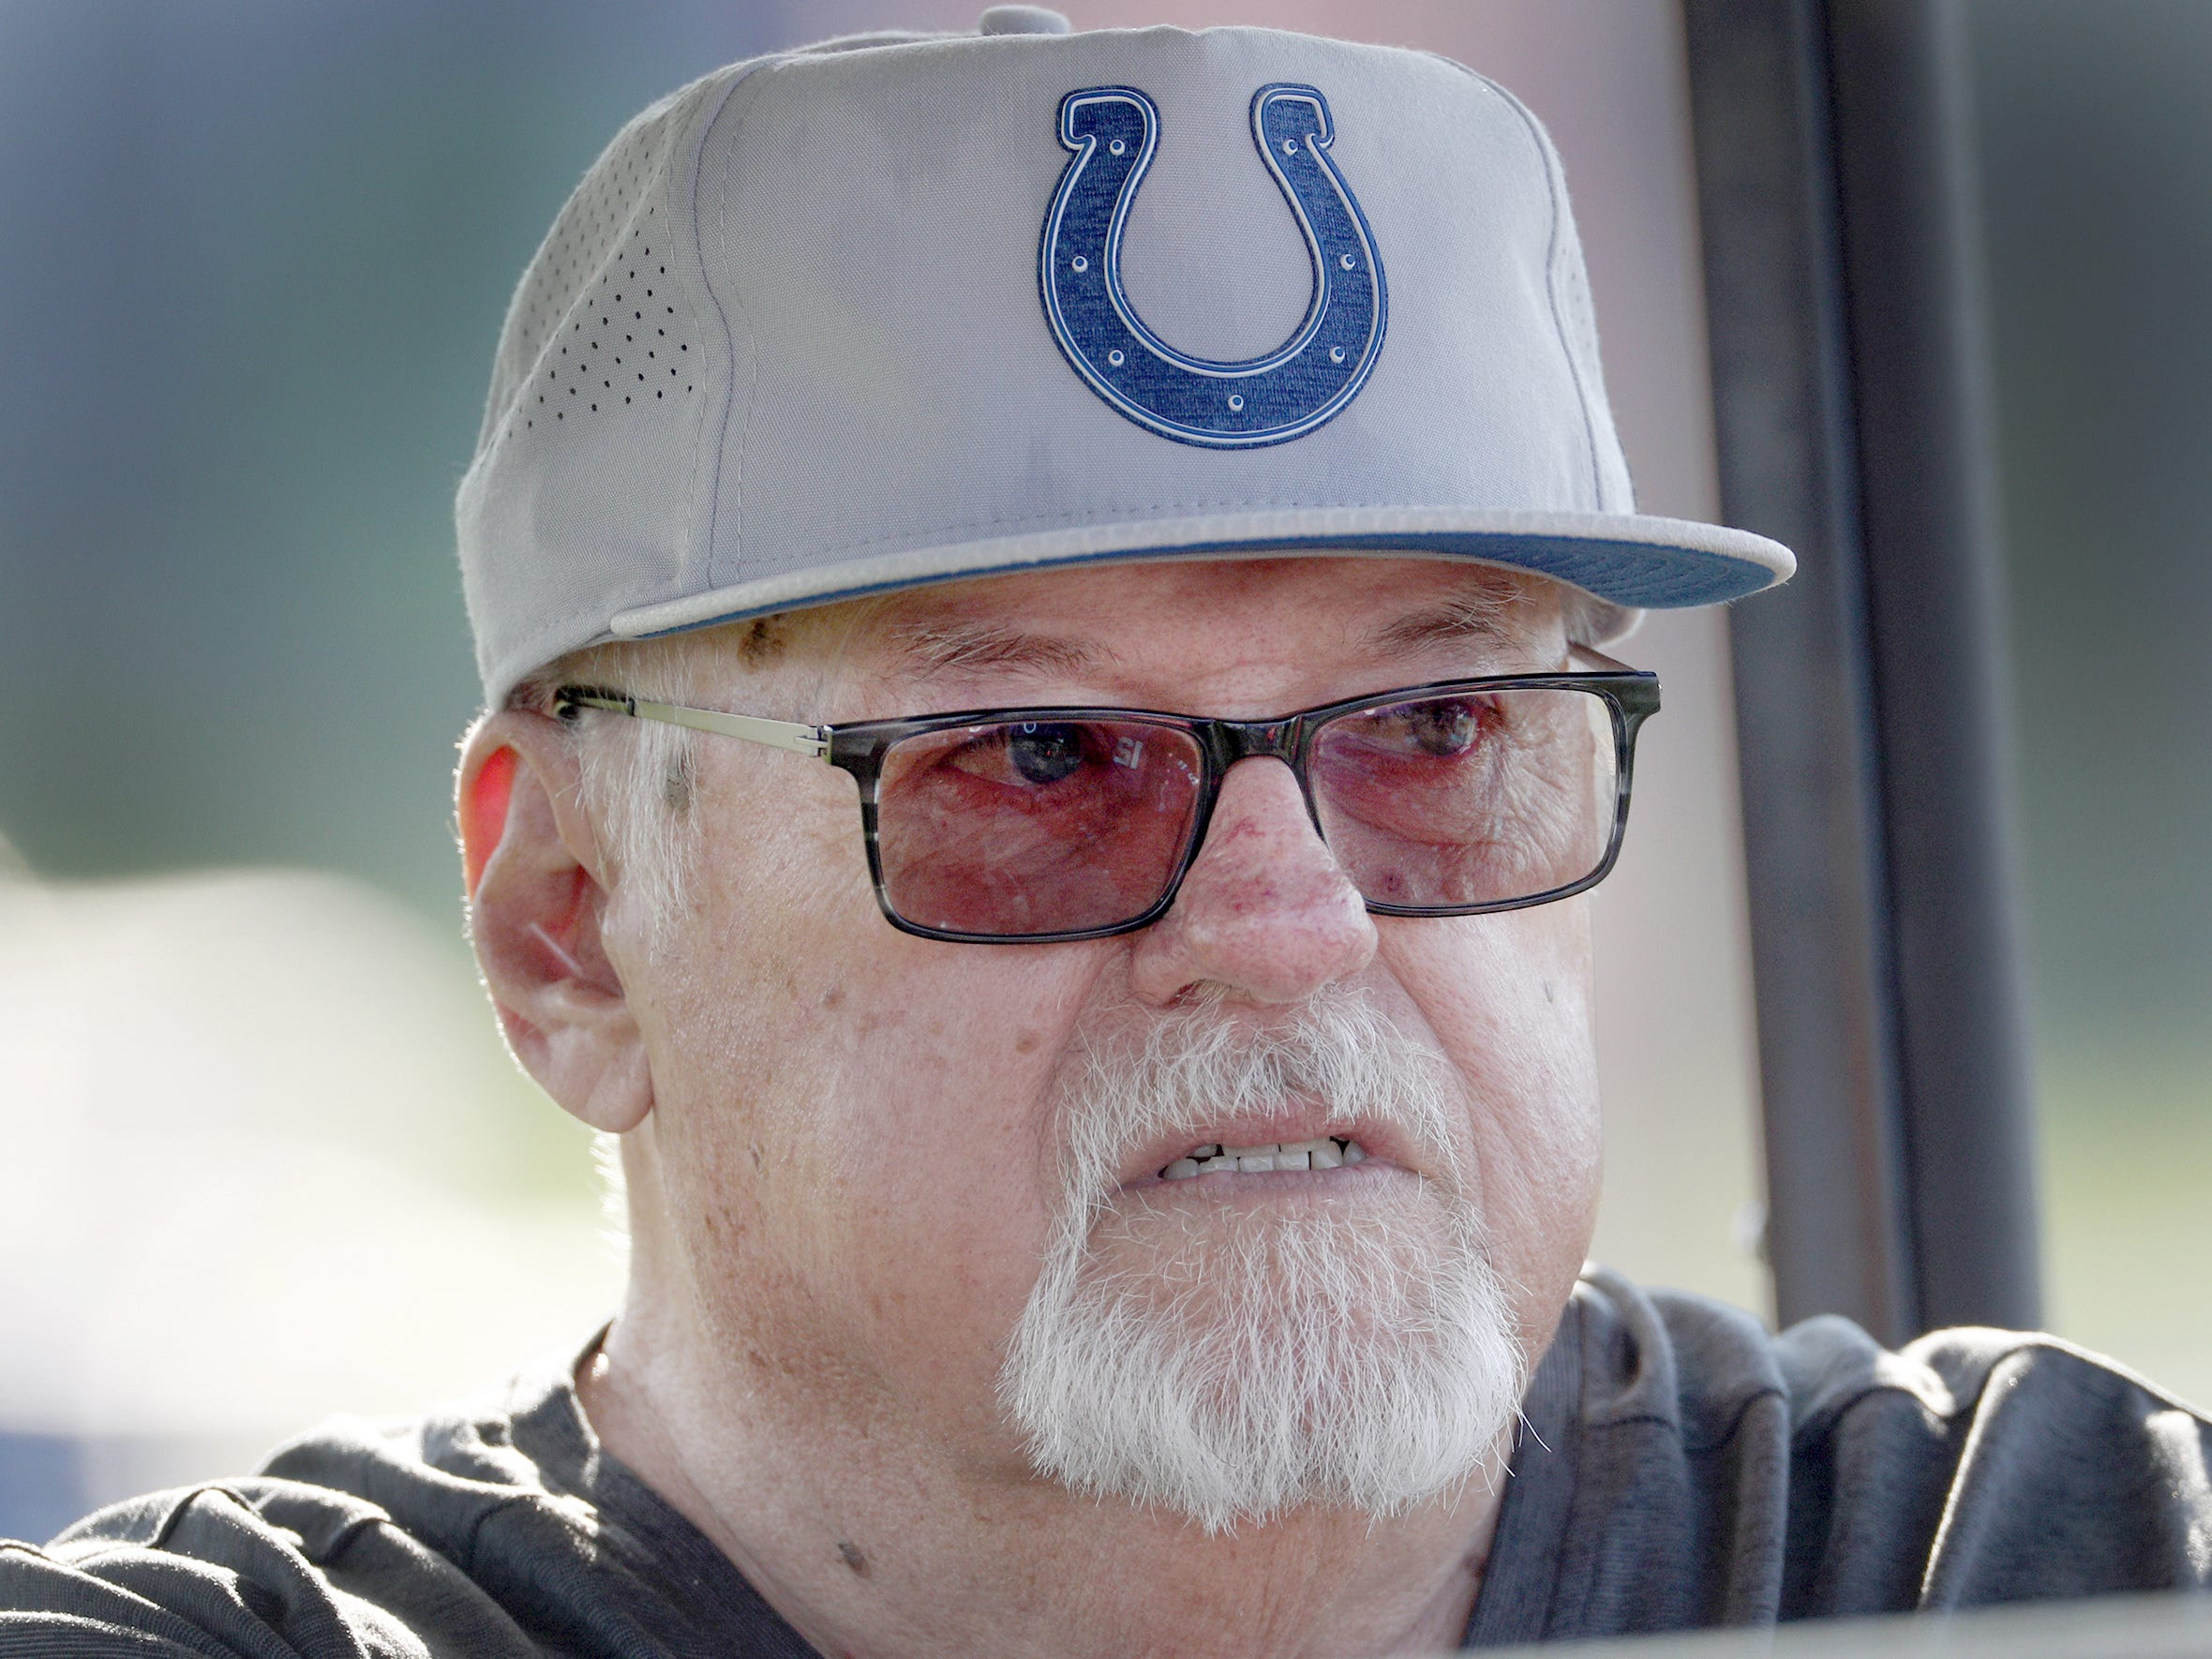 Indianapolis Colts play-by-play voice Bob Lamey during their seventh day of training camp at Grand Park in Westfield on Thursday, August 2, 2018. Lamey will retire after 31 seasons.